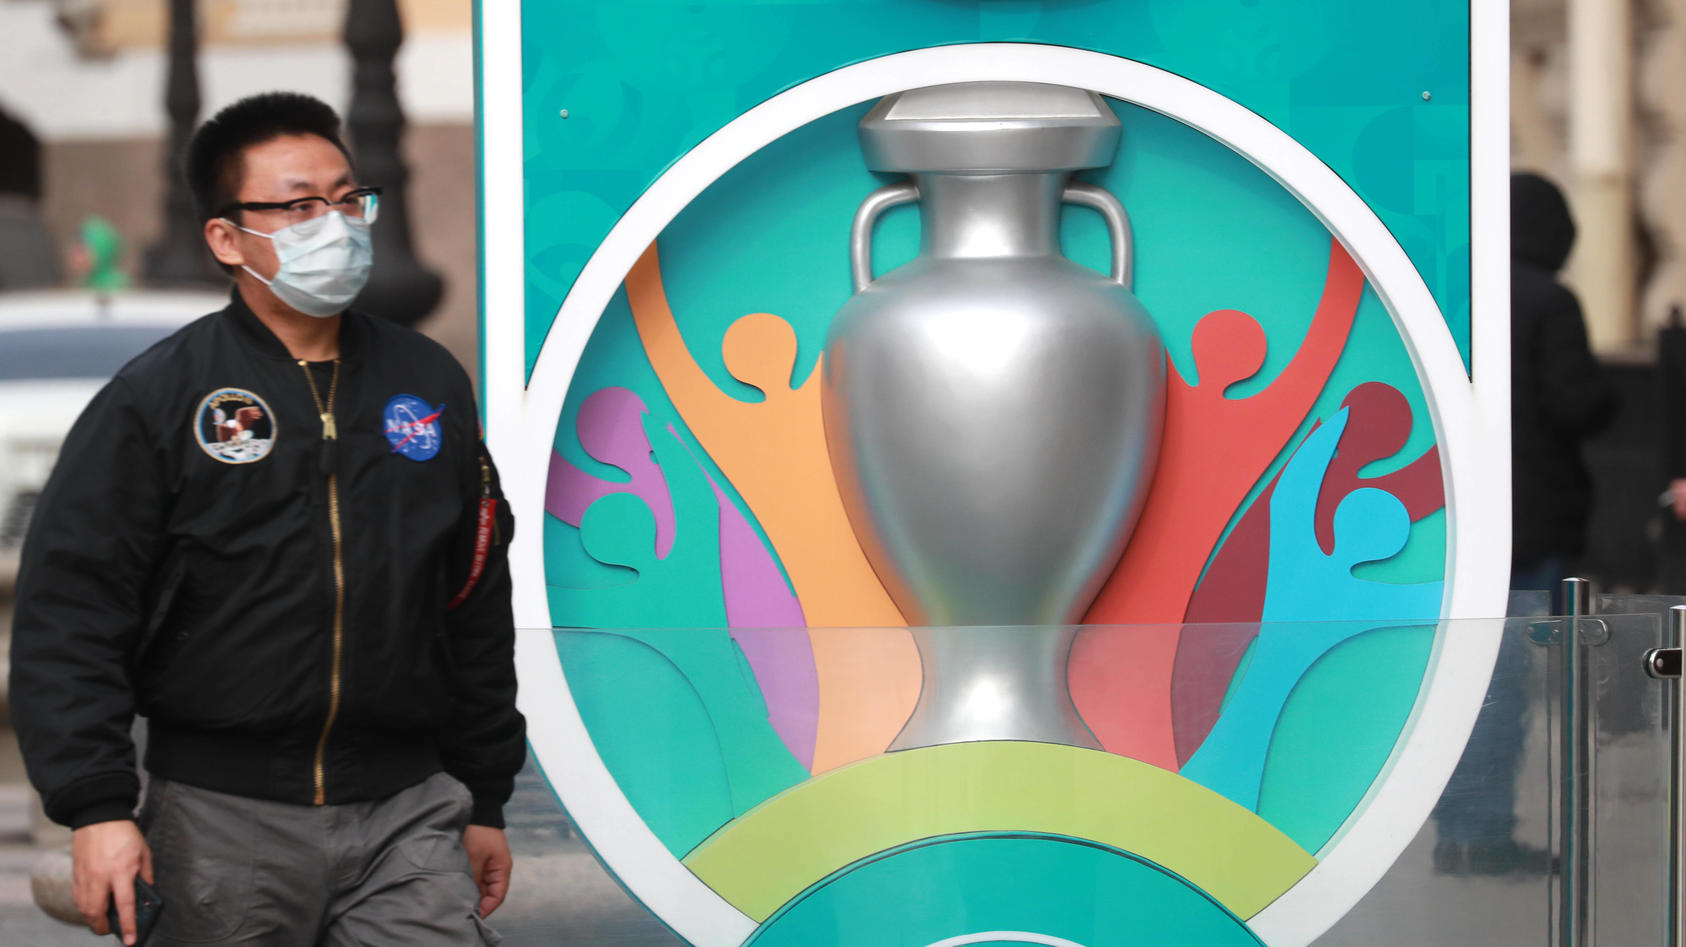 ST PETERSBURG, RUSSIA - MARCH 17, 2020: The clock counting down the time till the 2020 UEFA European Football Champions